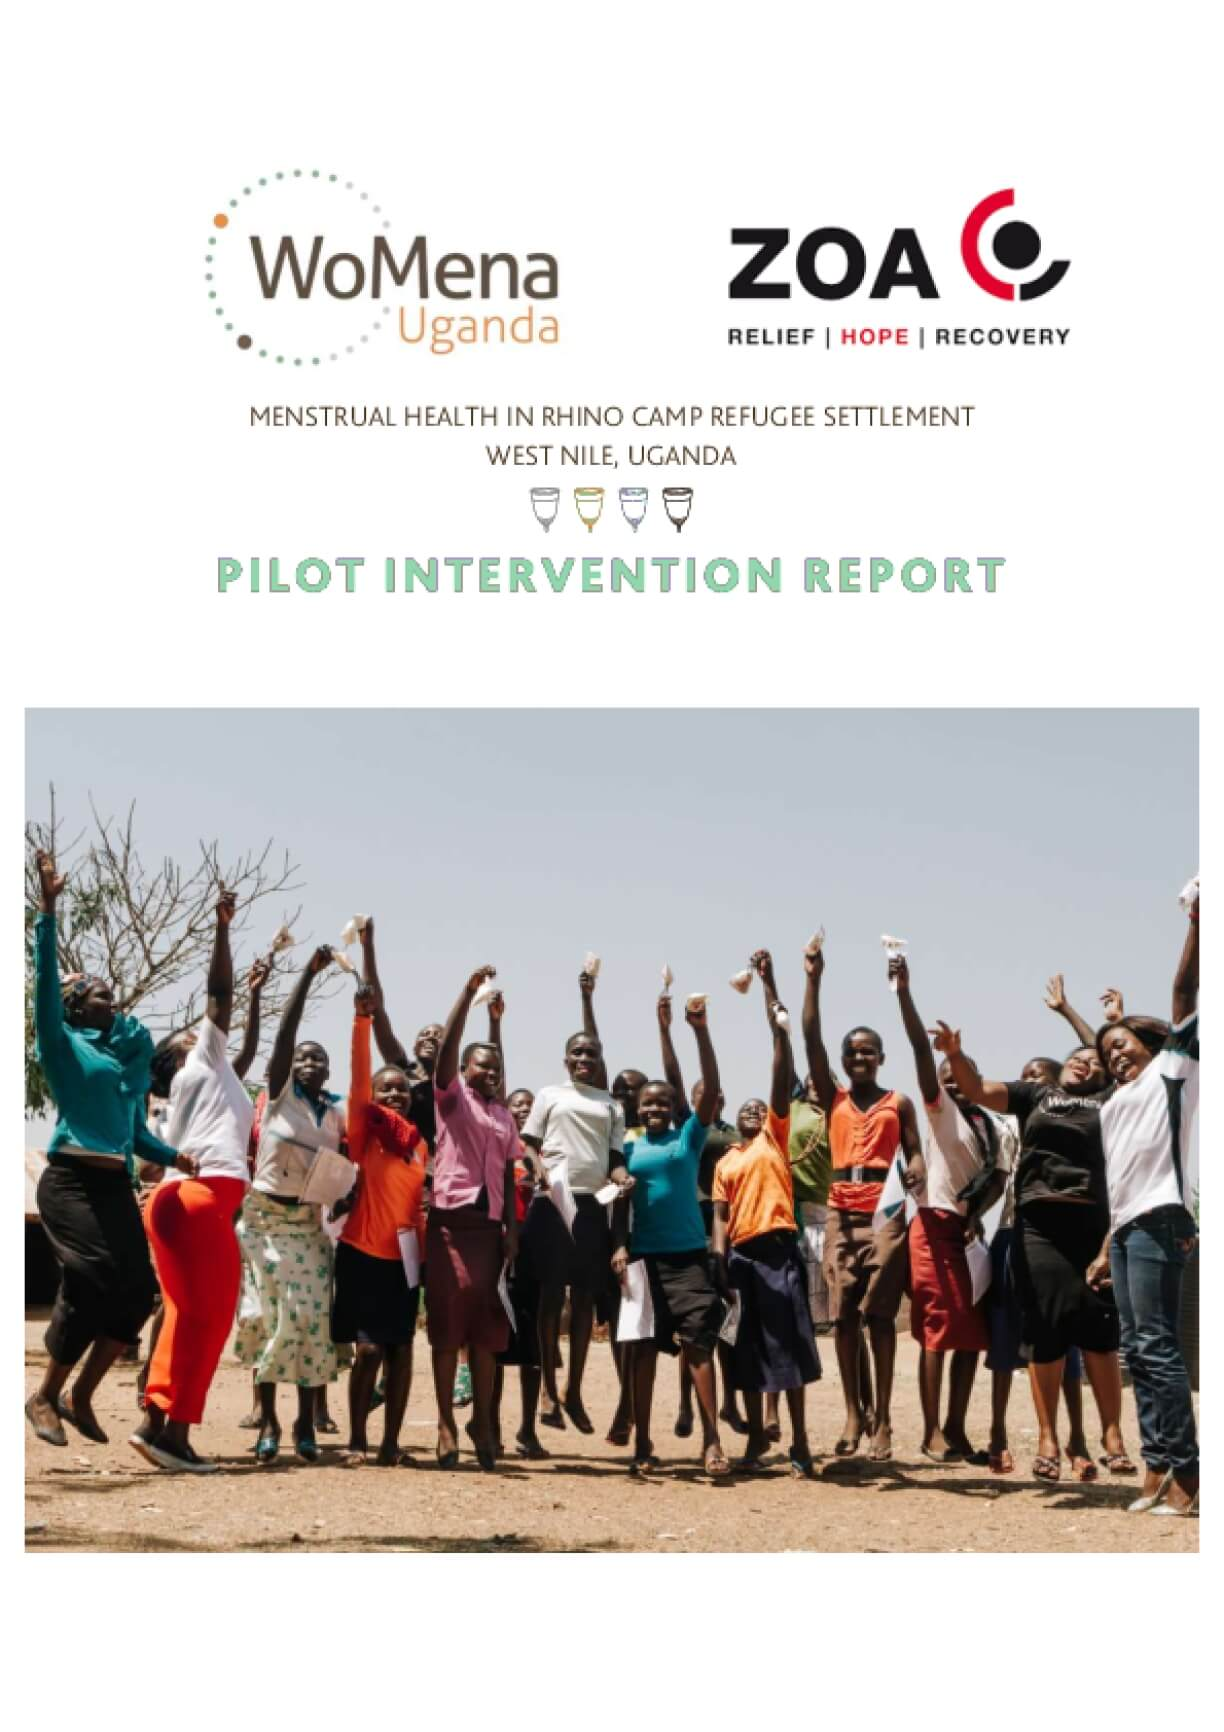 Menstrual Health in Rhino Camp Refugee Settlement West Nile, Uganda: Pilot Intervention Report